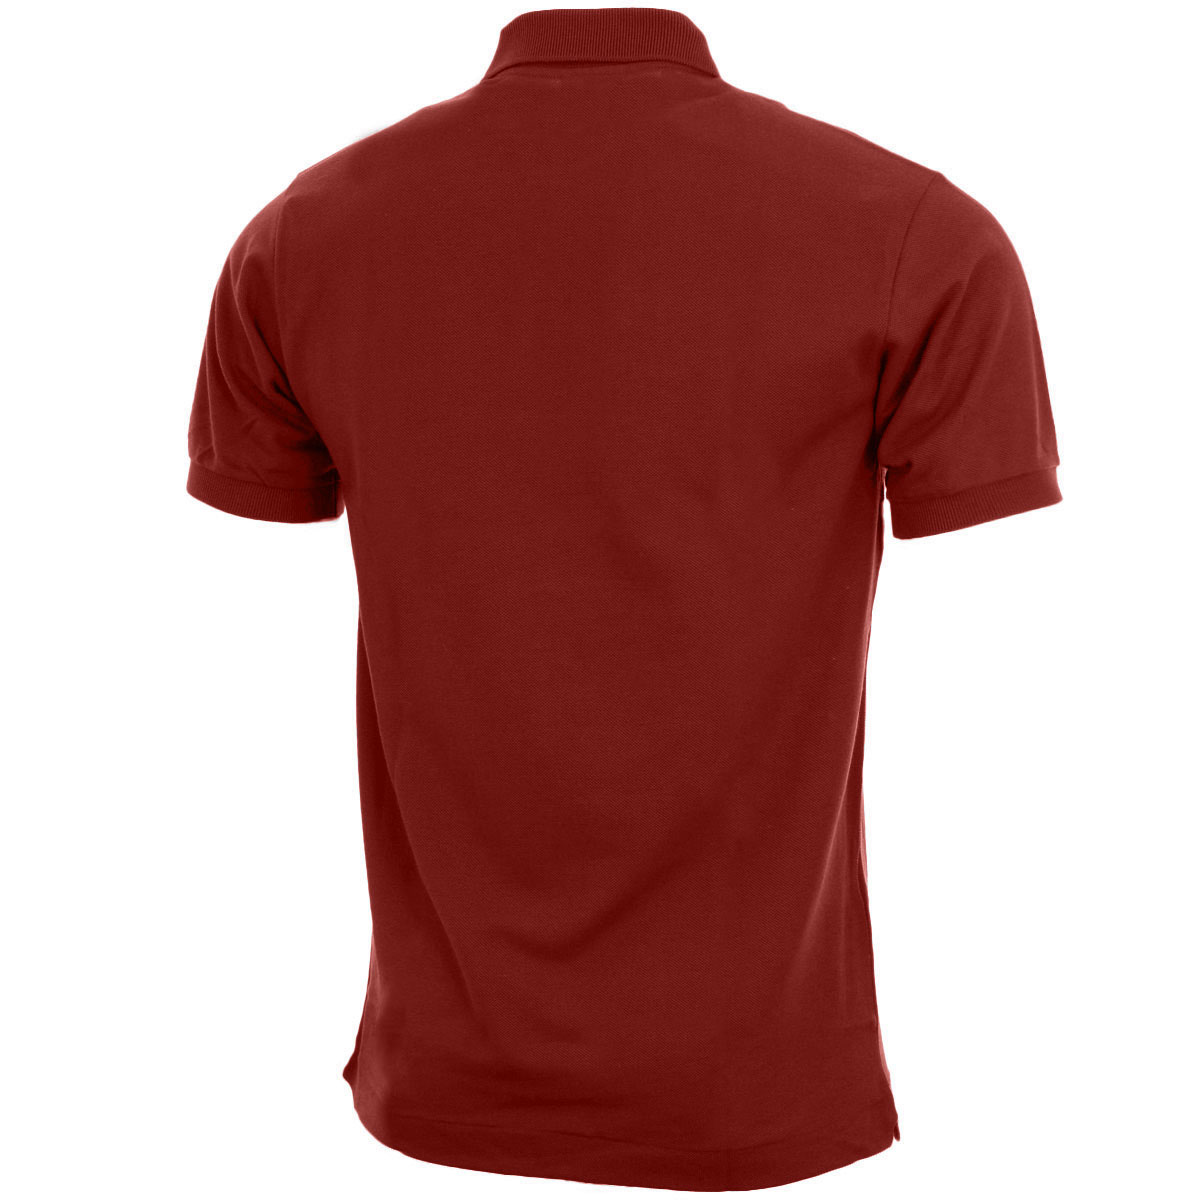 Lacoste-Mens-Classic-Cotton-L1212-Short-Sleeve-Polo-Shirt-26-OFF-RRP thumbnail 55